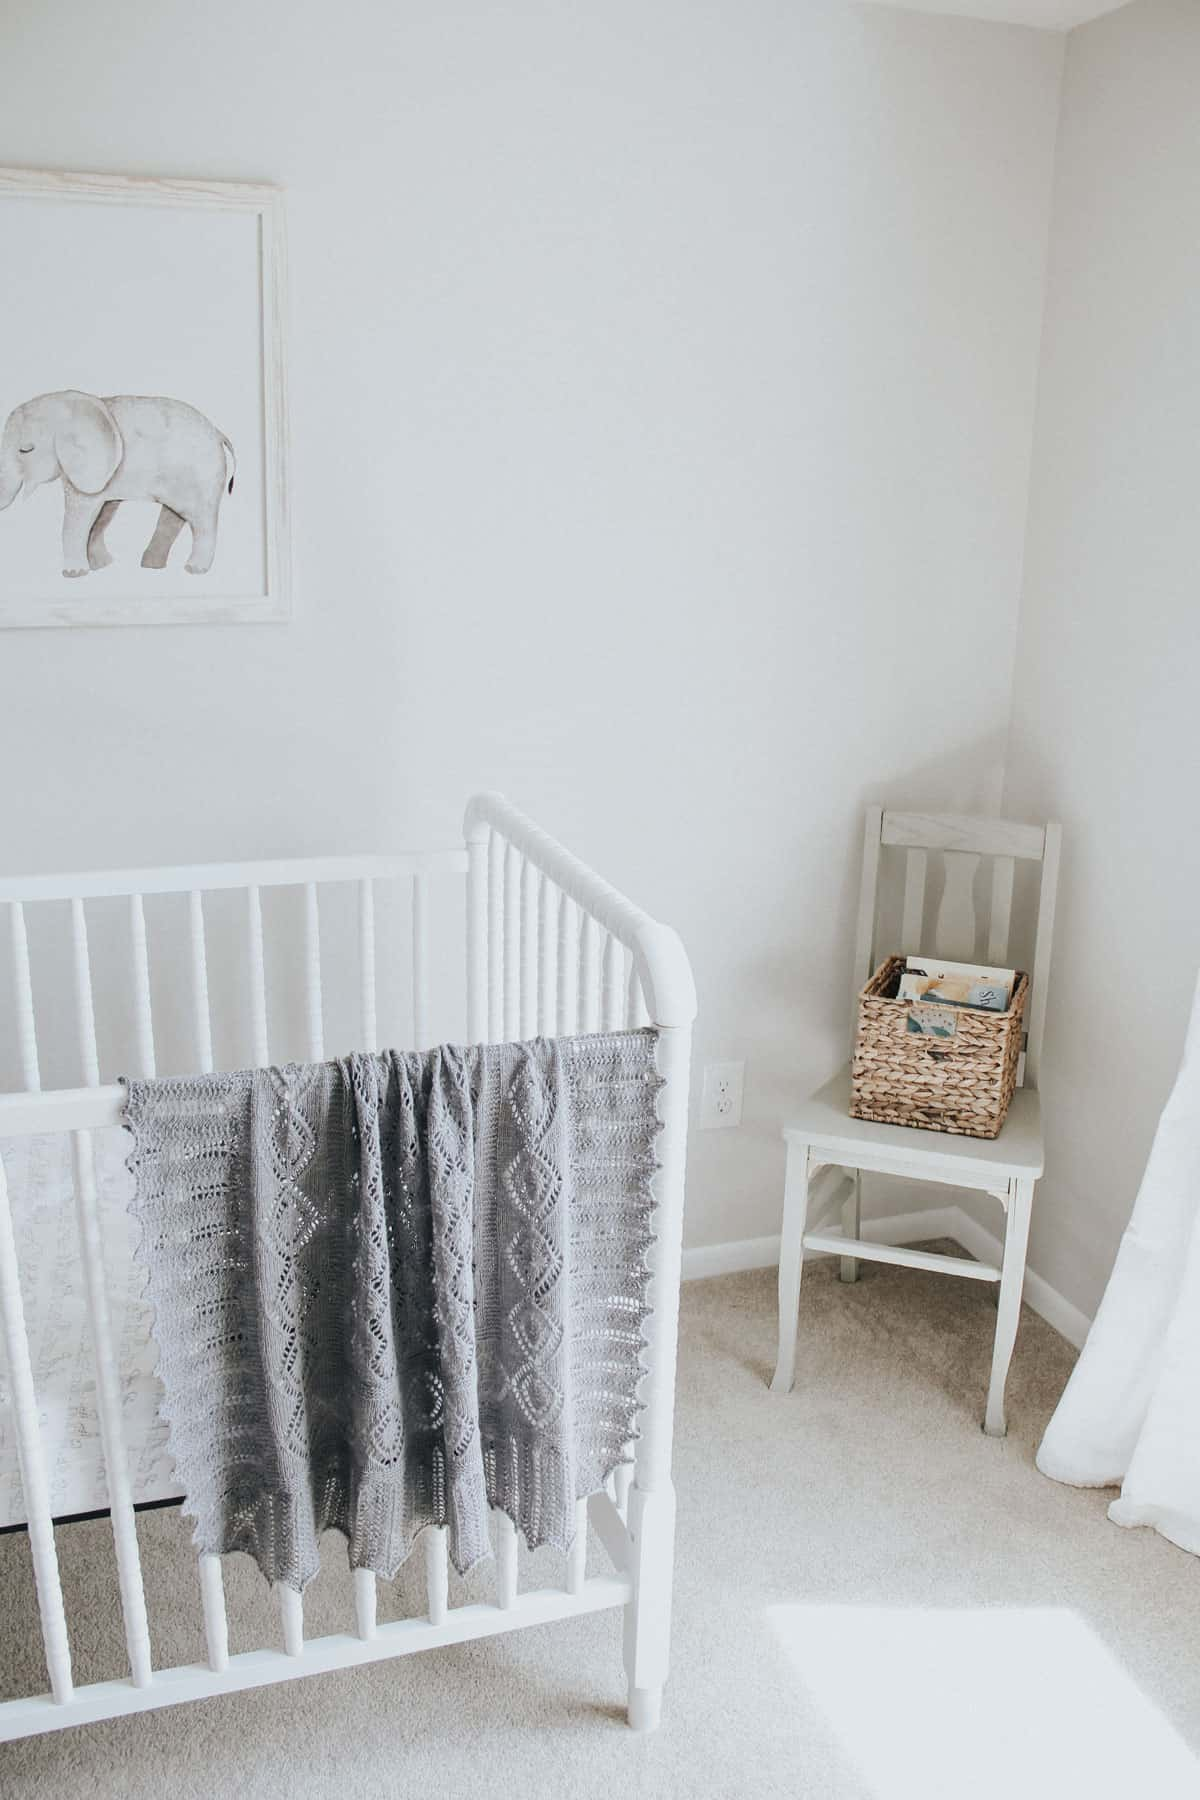 Hand knit blanket on a white Jenny Lind crib.